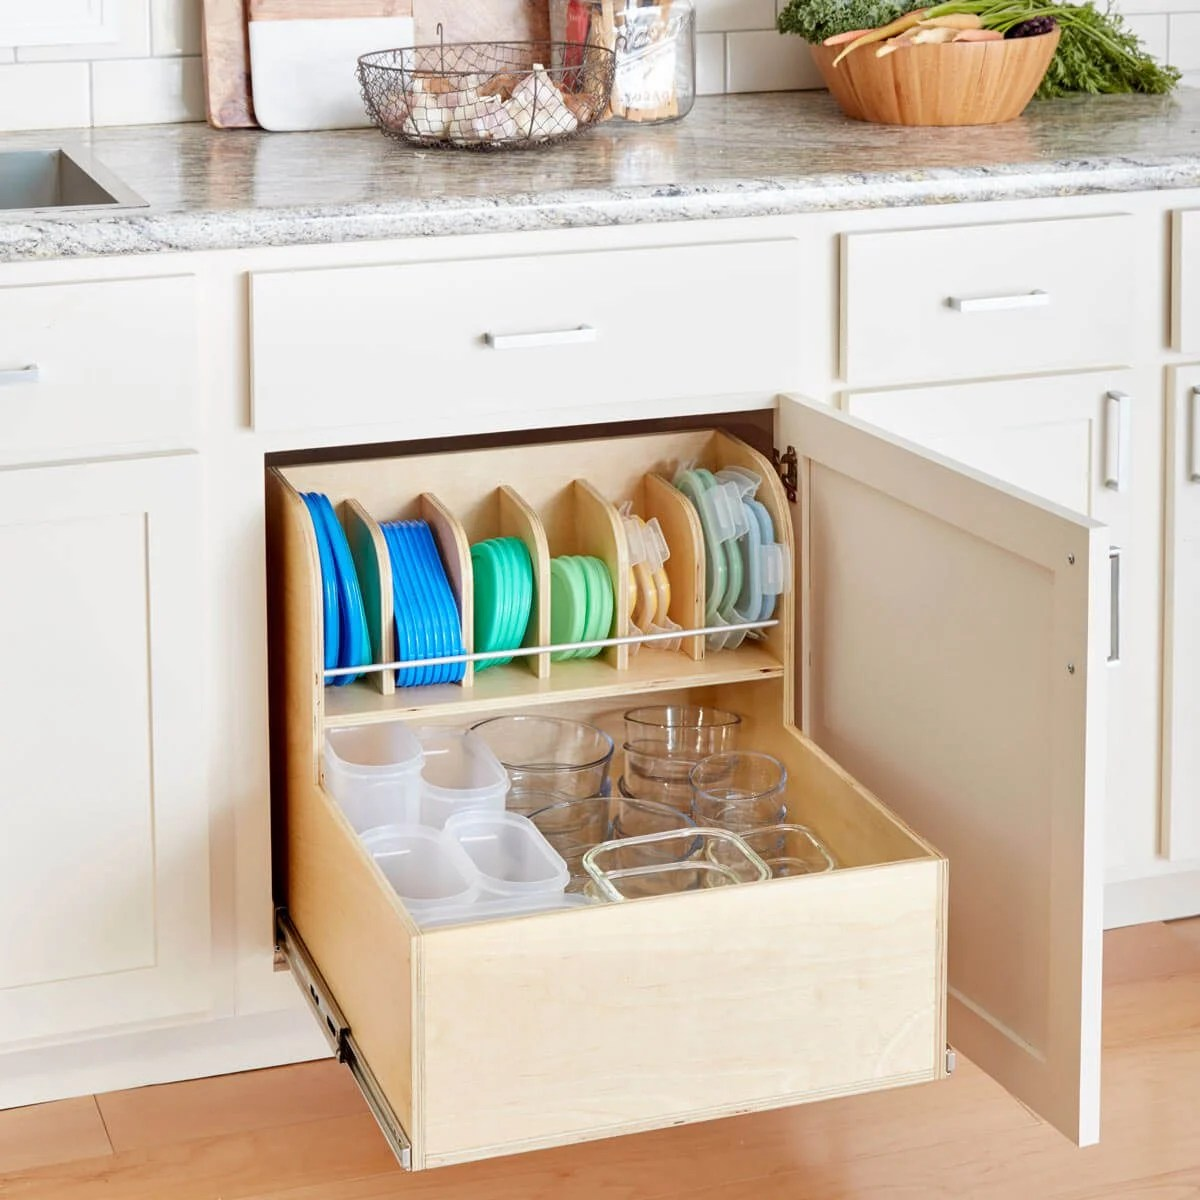 Kitchen Organizer Storage Build An Ultimate Container Storage Cabinet The Family Handyman